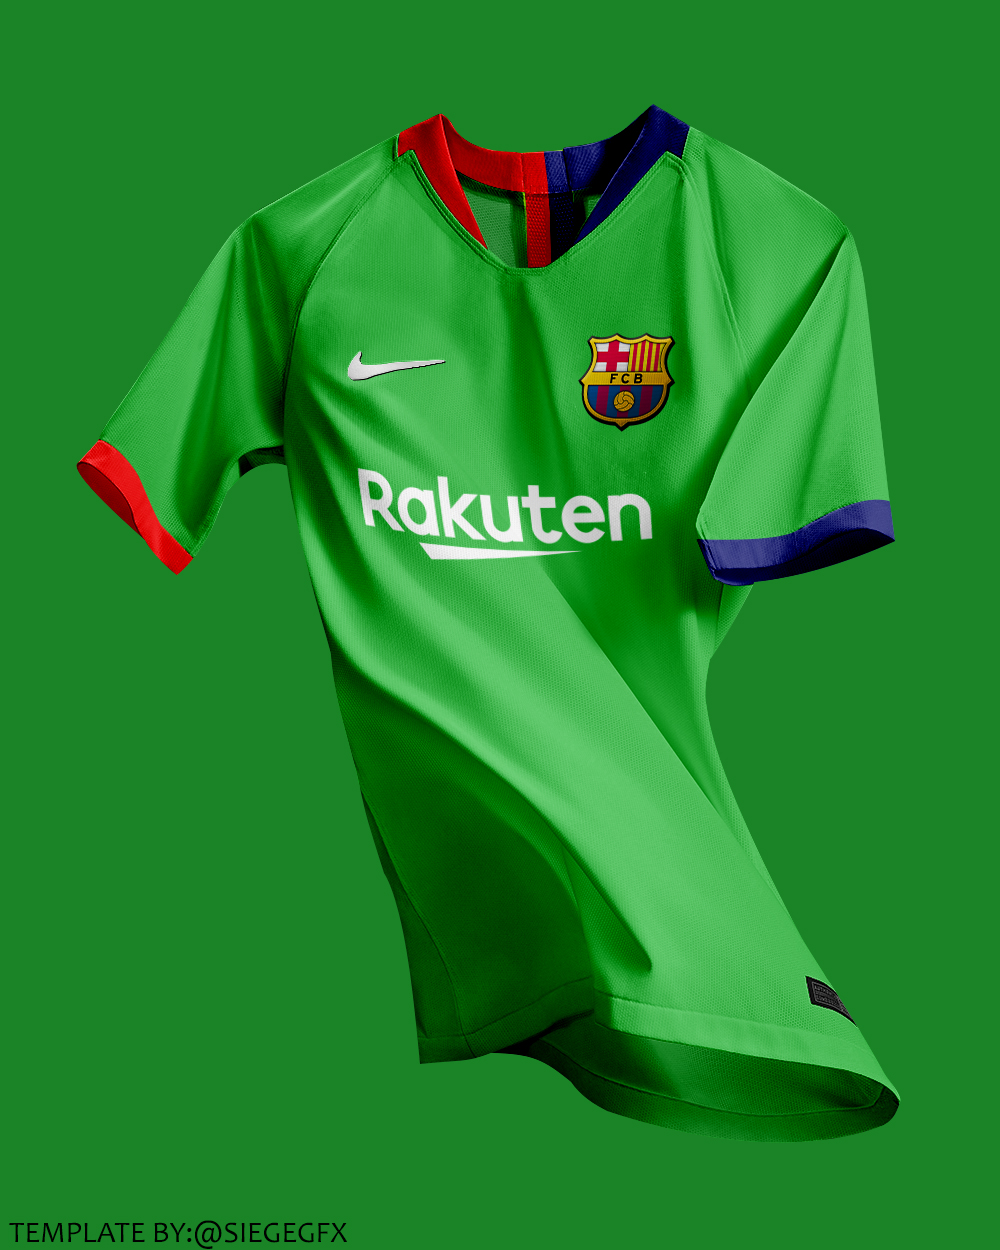 c0a0a605469 FC Barcelona Away Kit Concept